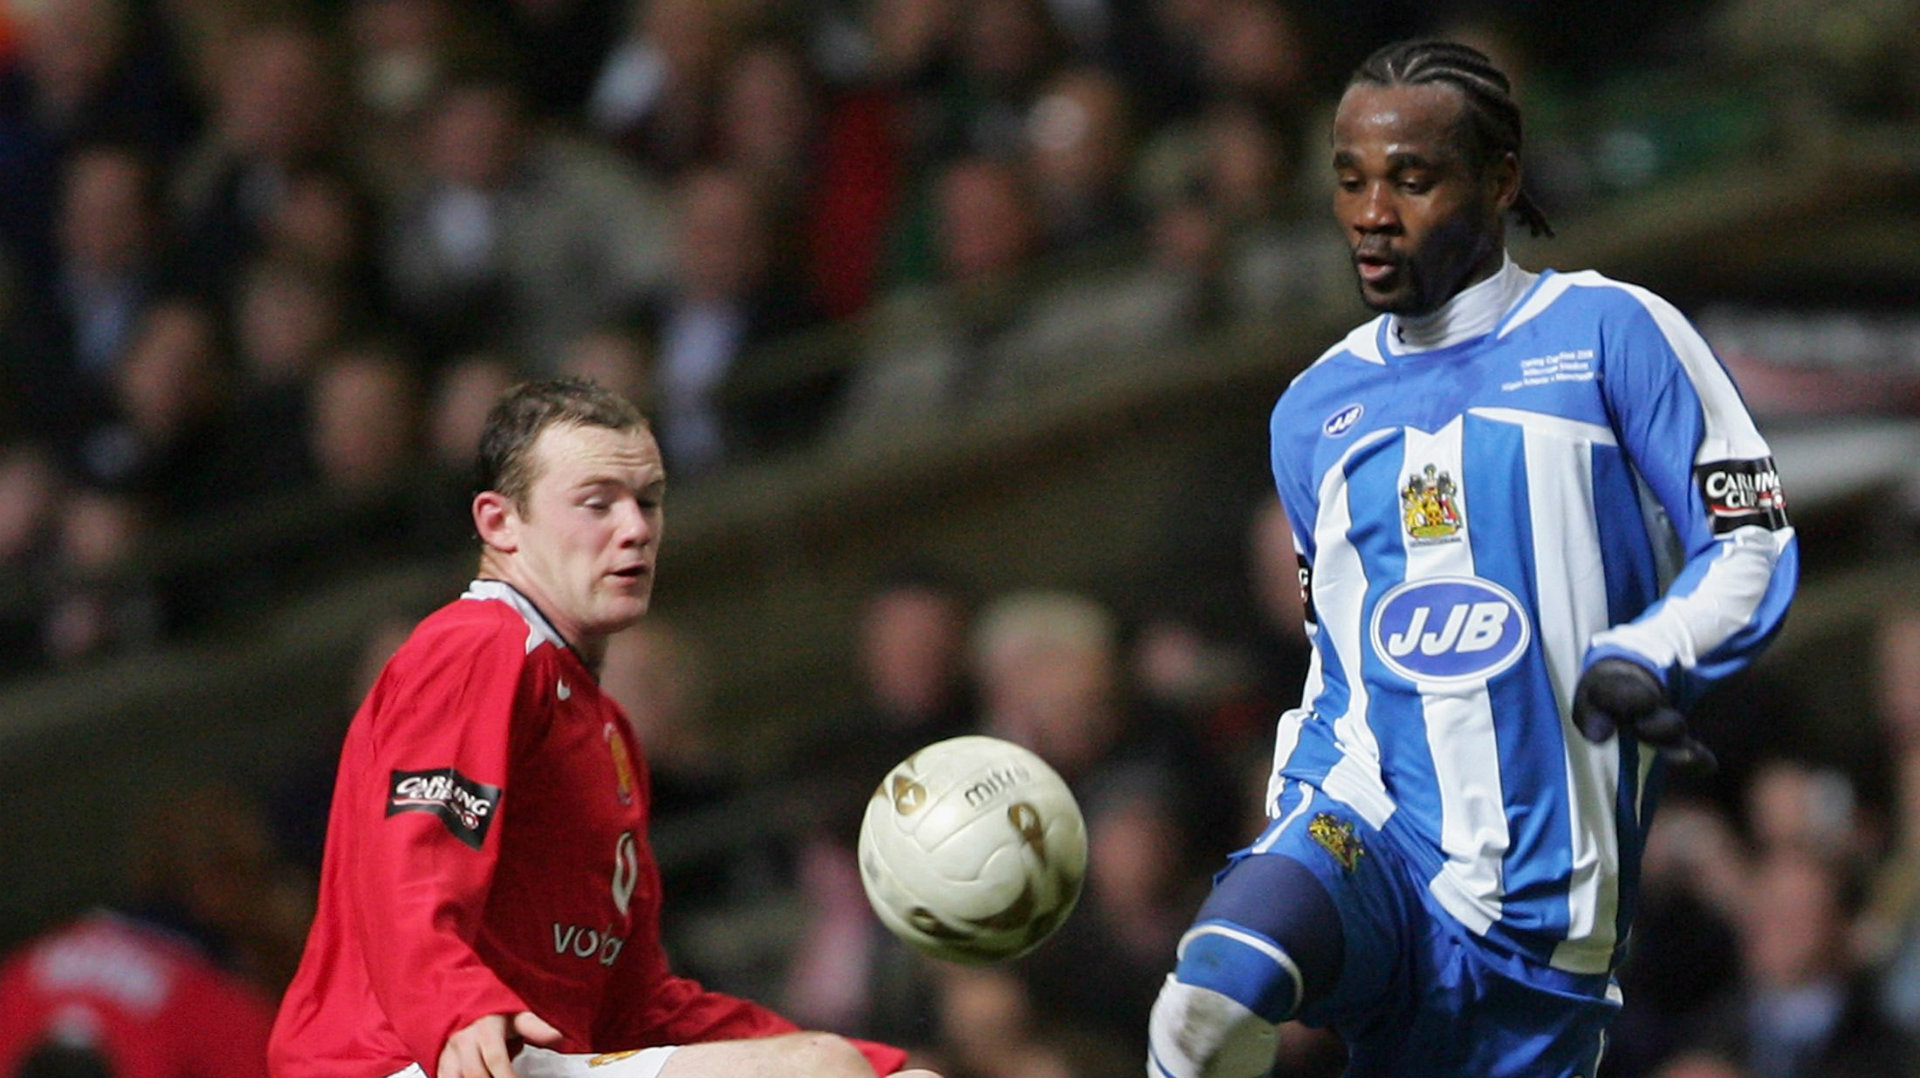 'That's my biggest regret' - Chimbonda feels Man Utd move was scuppered by Wigan transfer request